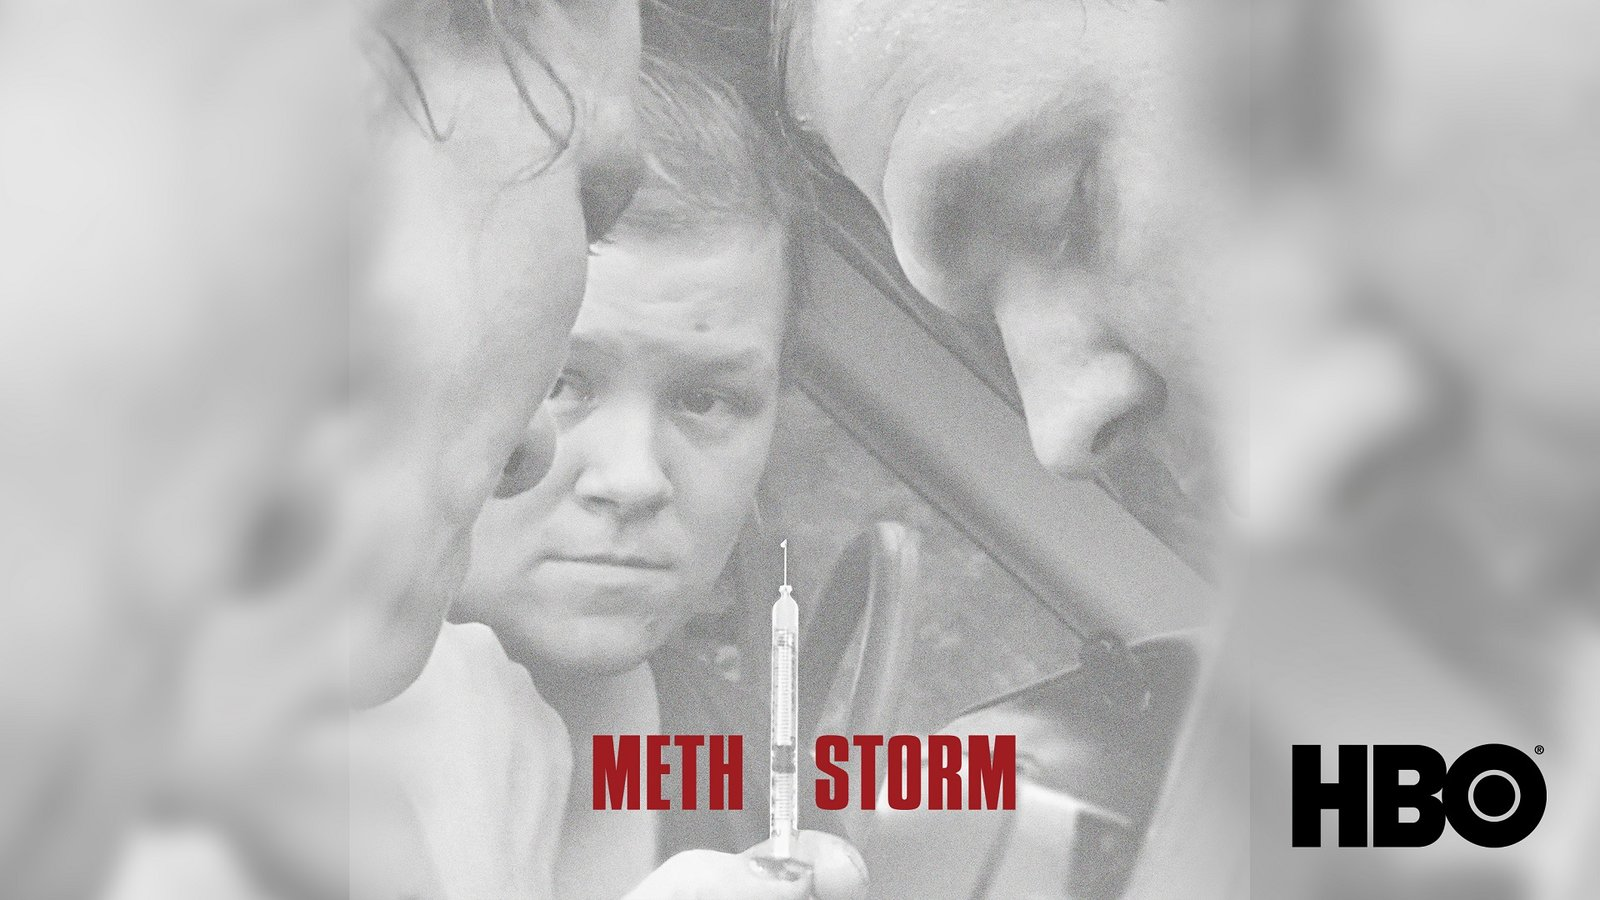 Meth Storm - Meth Addiction in Rural Arkansas